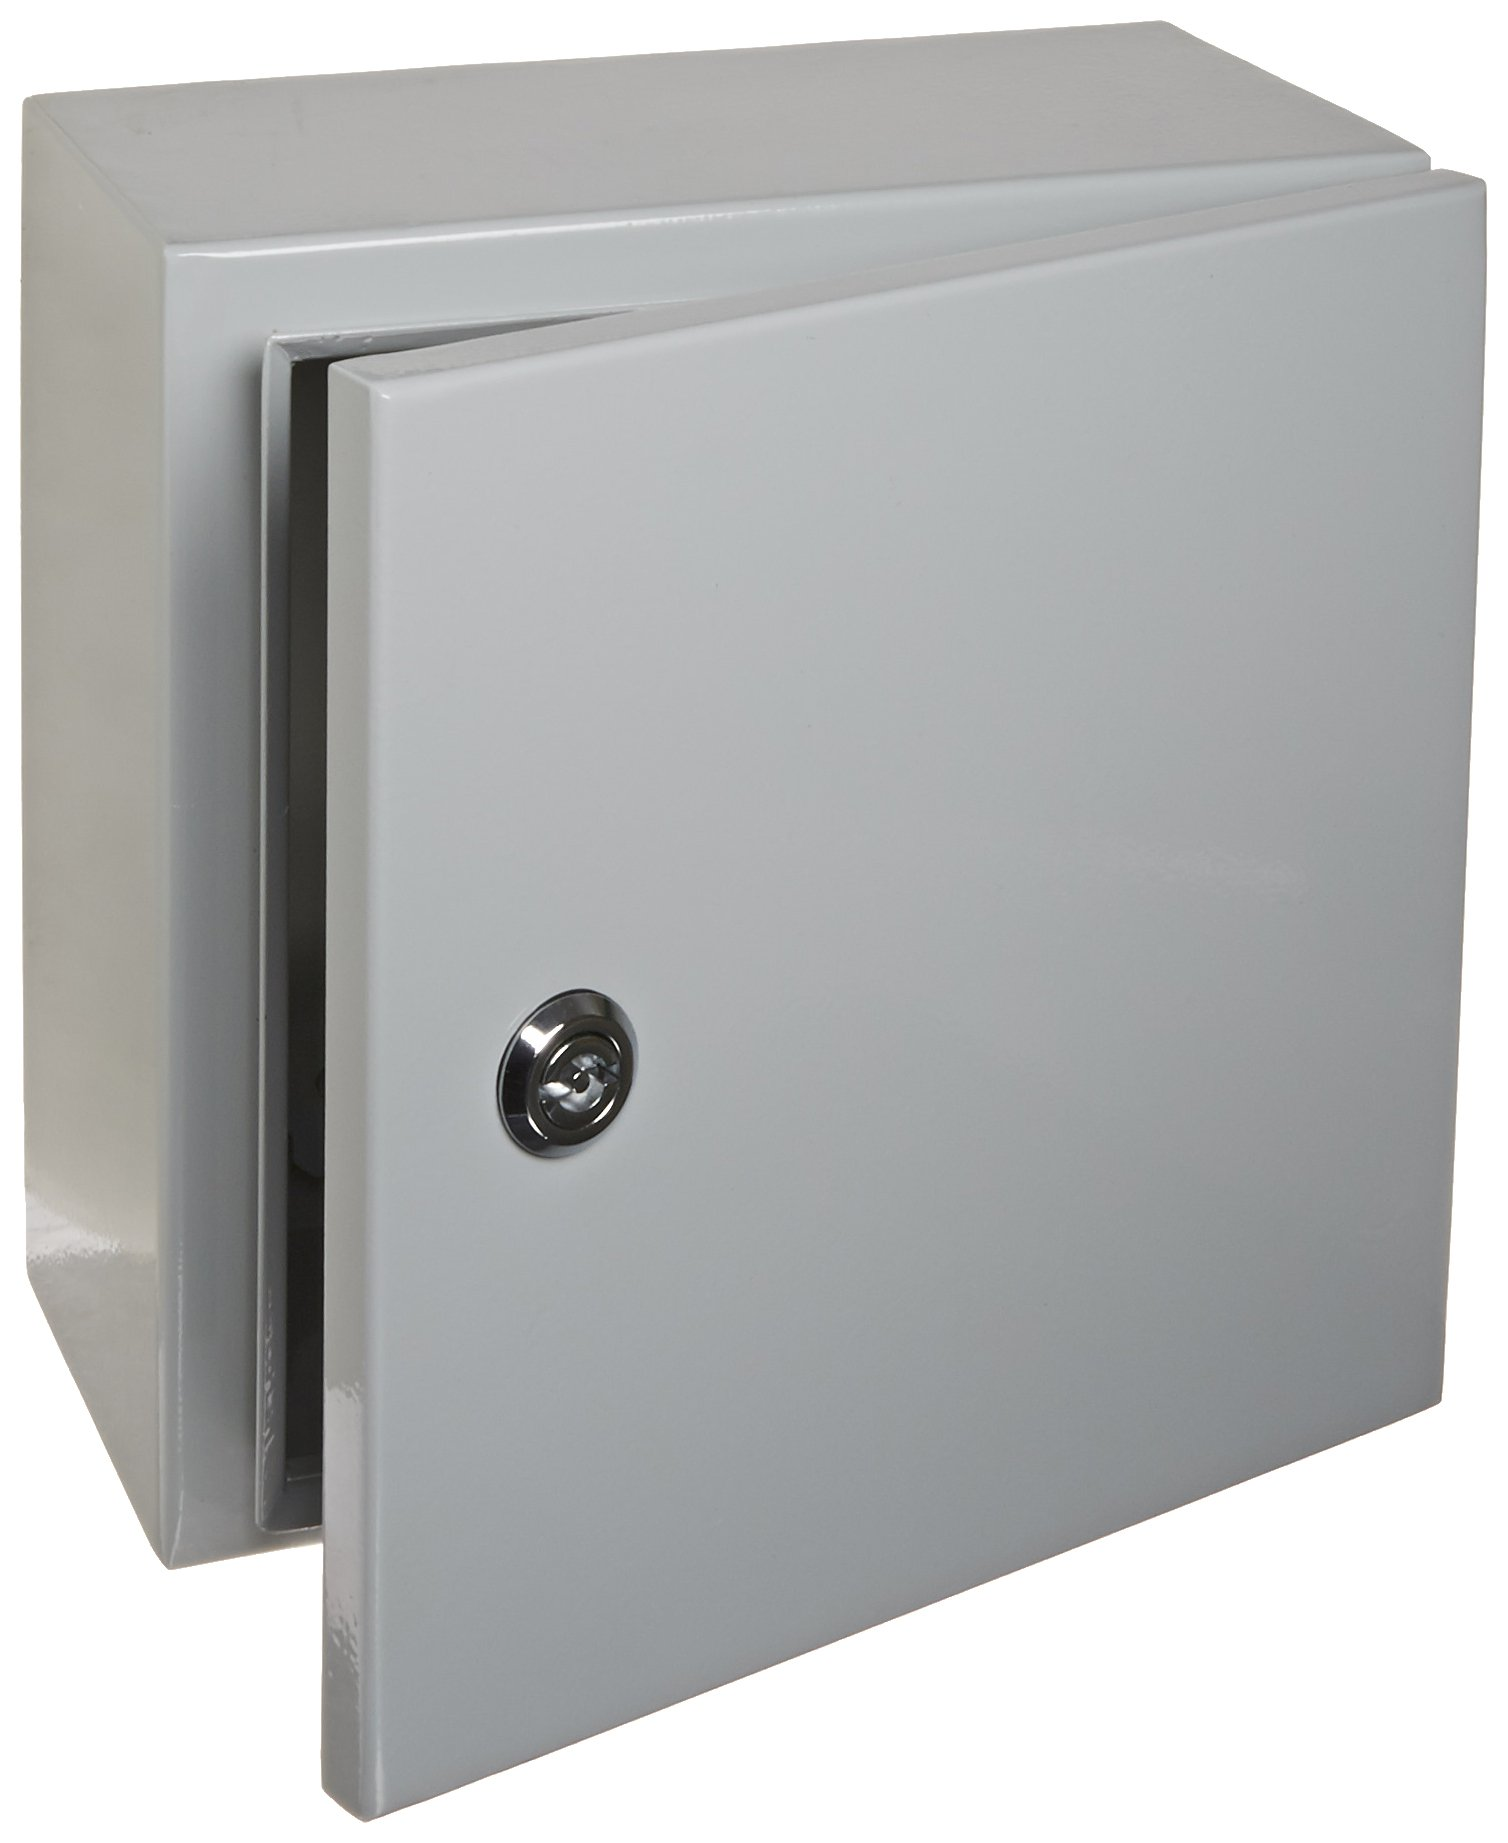 BUD Industries Series SNB Steel NEMA 4 Sheet Metal Box with Mounting Bracket, 9-53/64'' Width x 9-53/64'' Height x 5-29/32'' Depth, Smooth Gray Finish